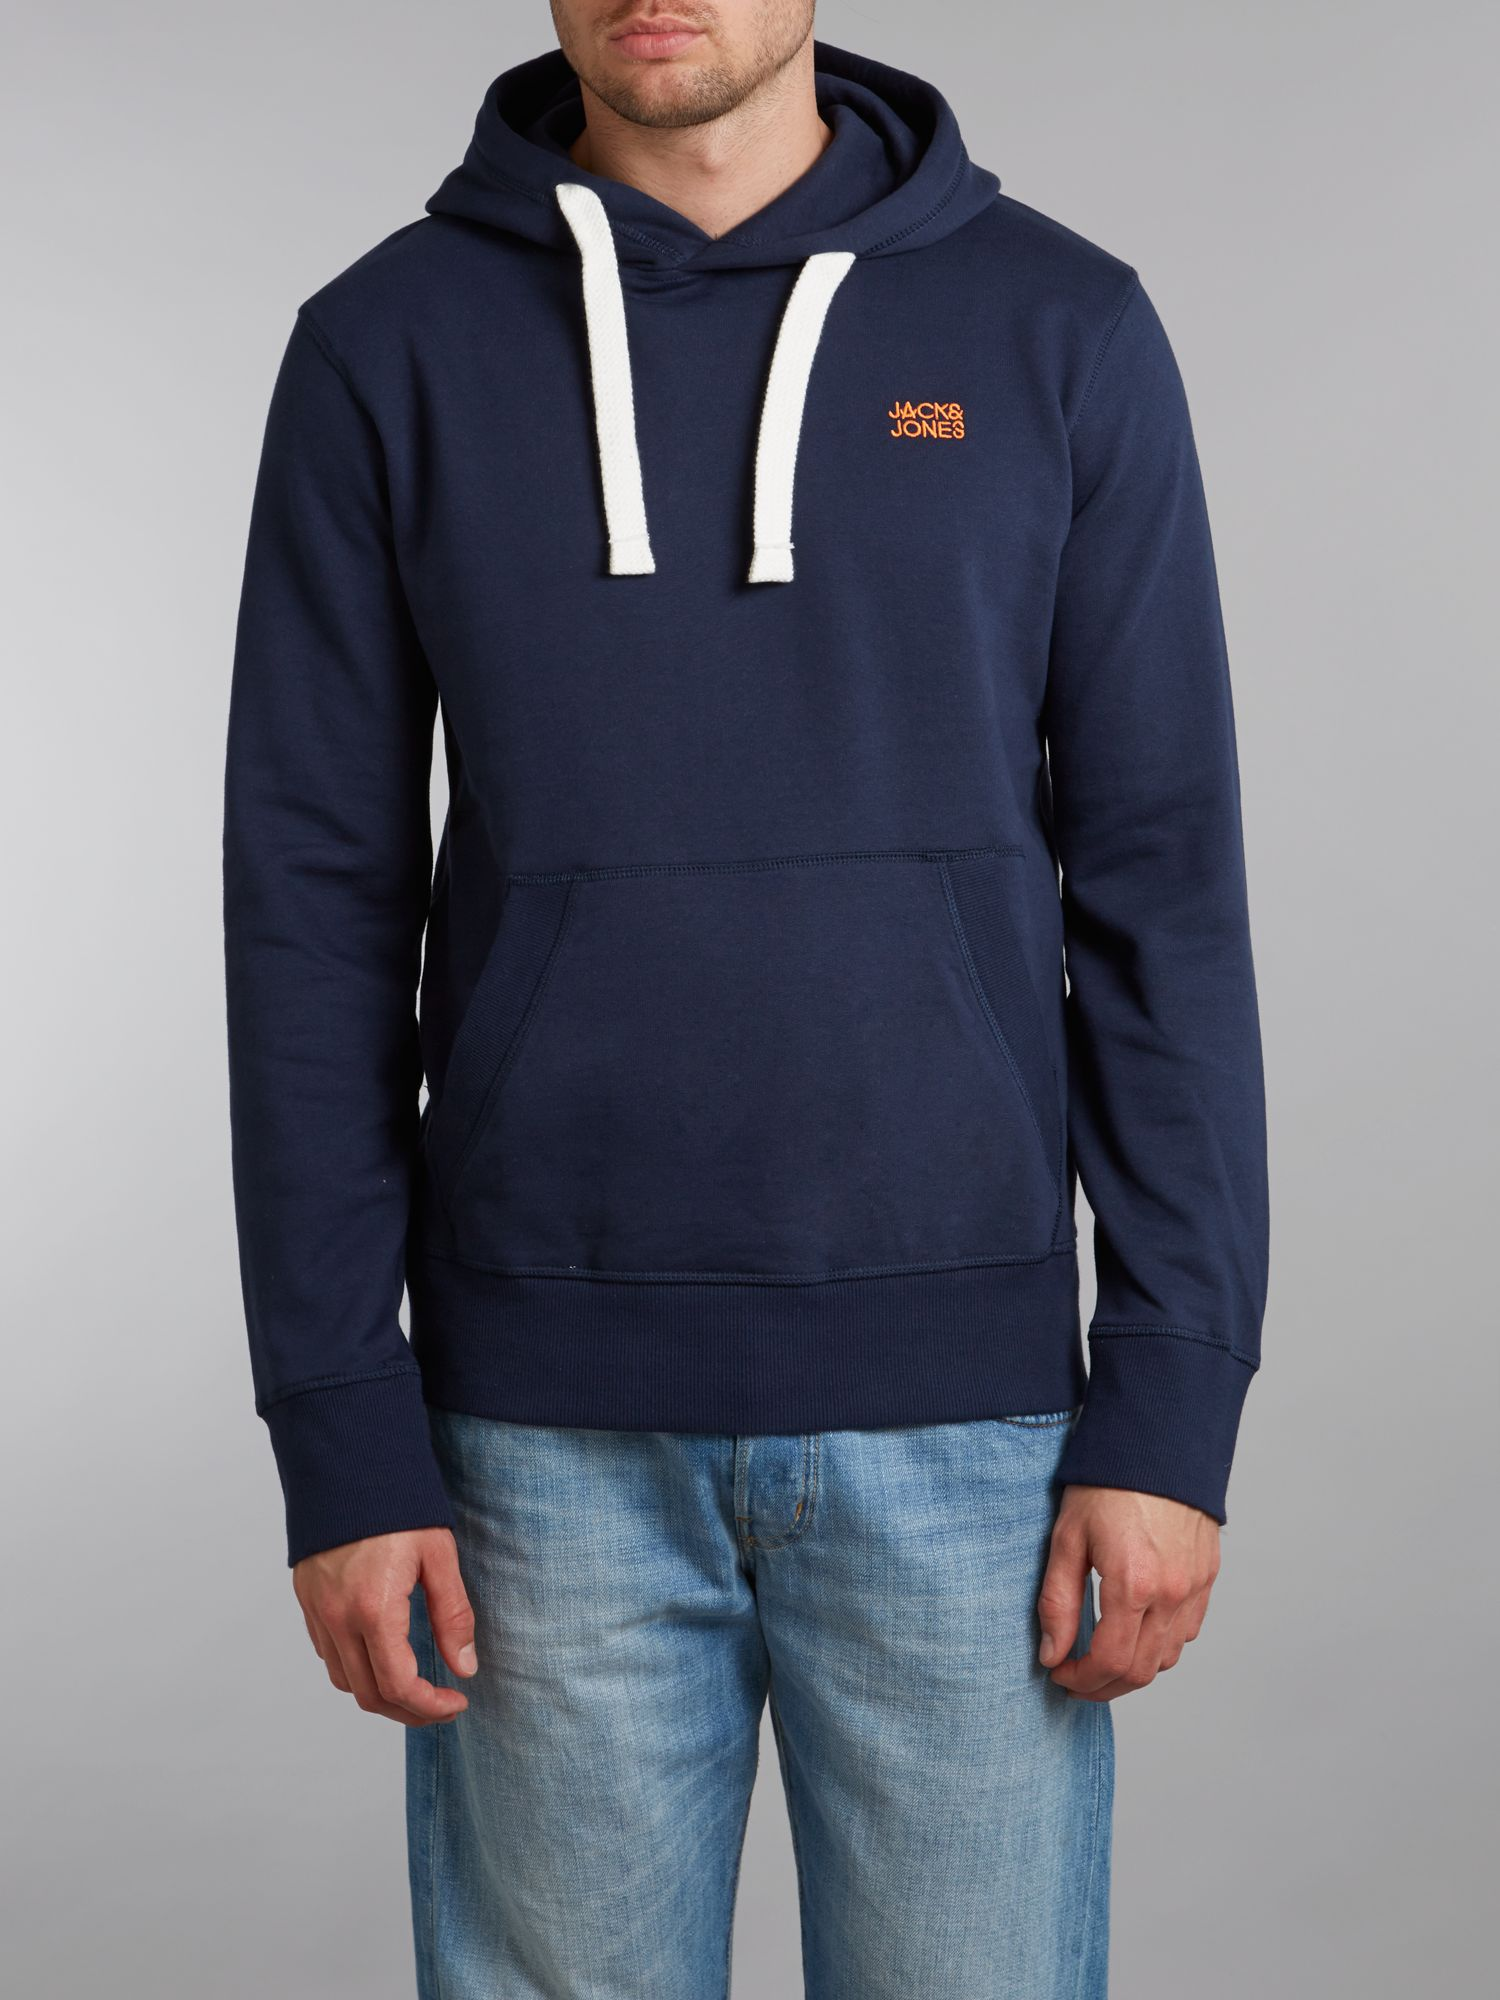 Long sleeved hooded sweat